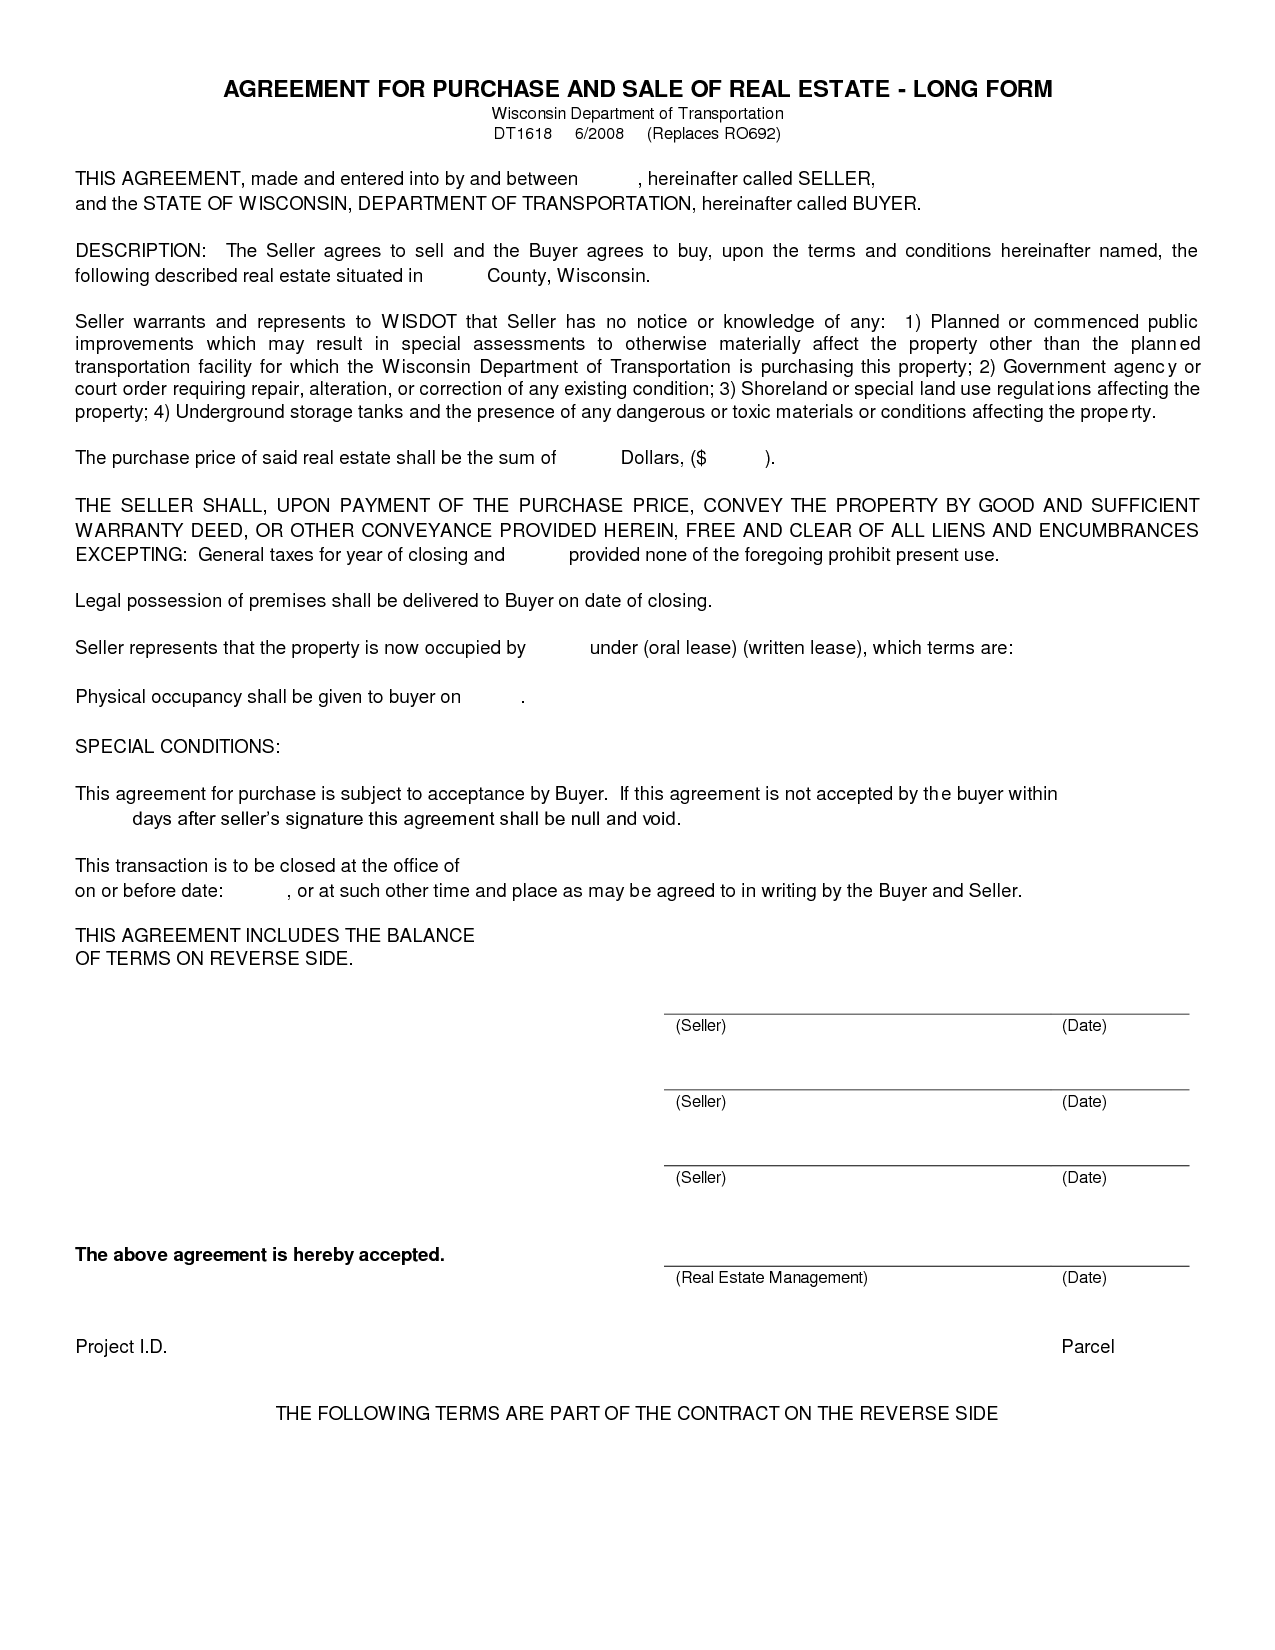 Free Blank Purchase Agreement Form images